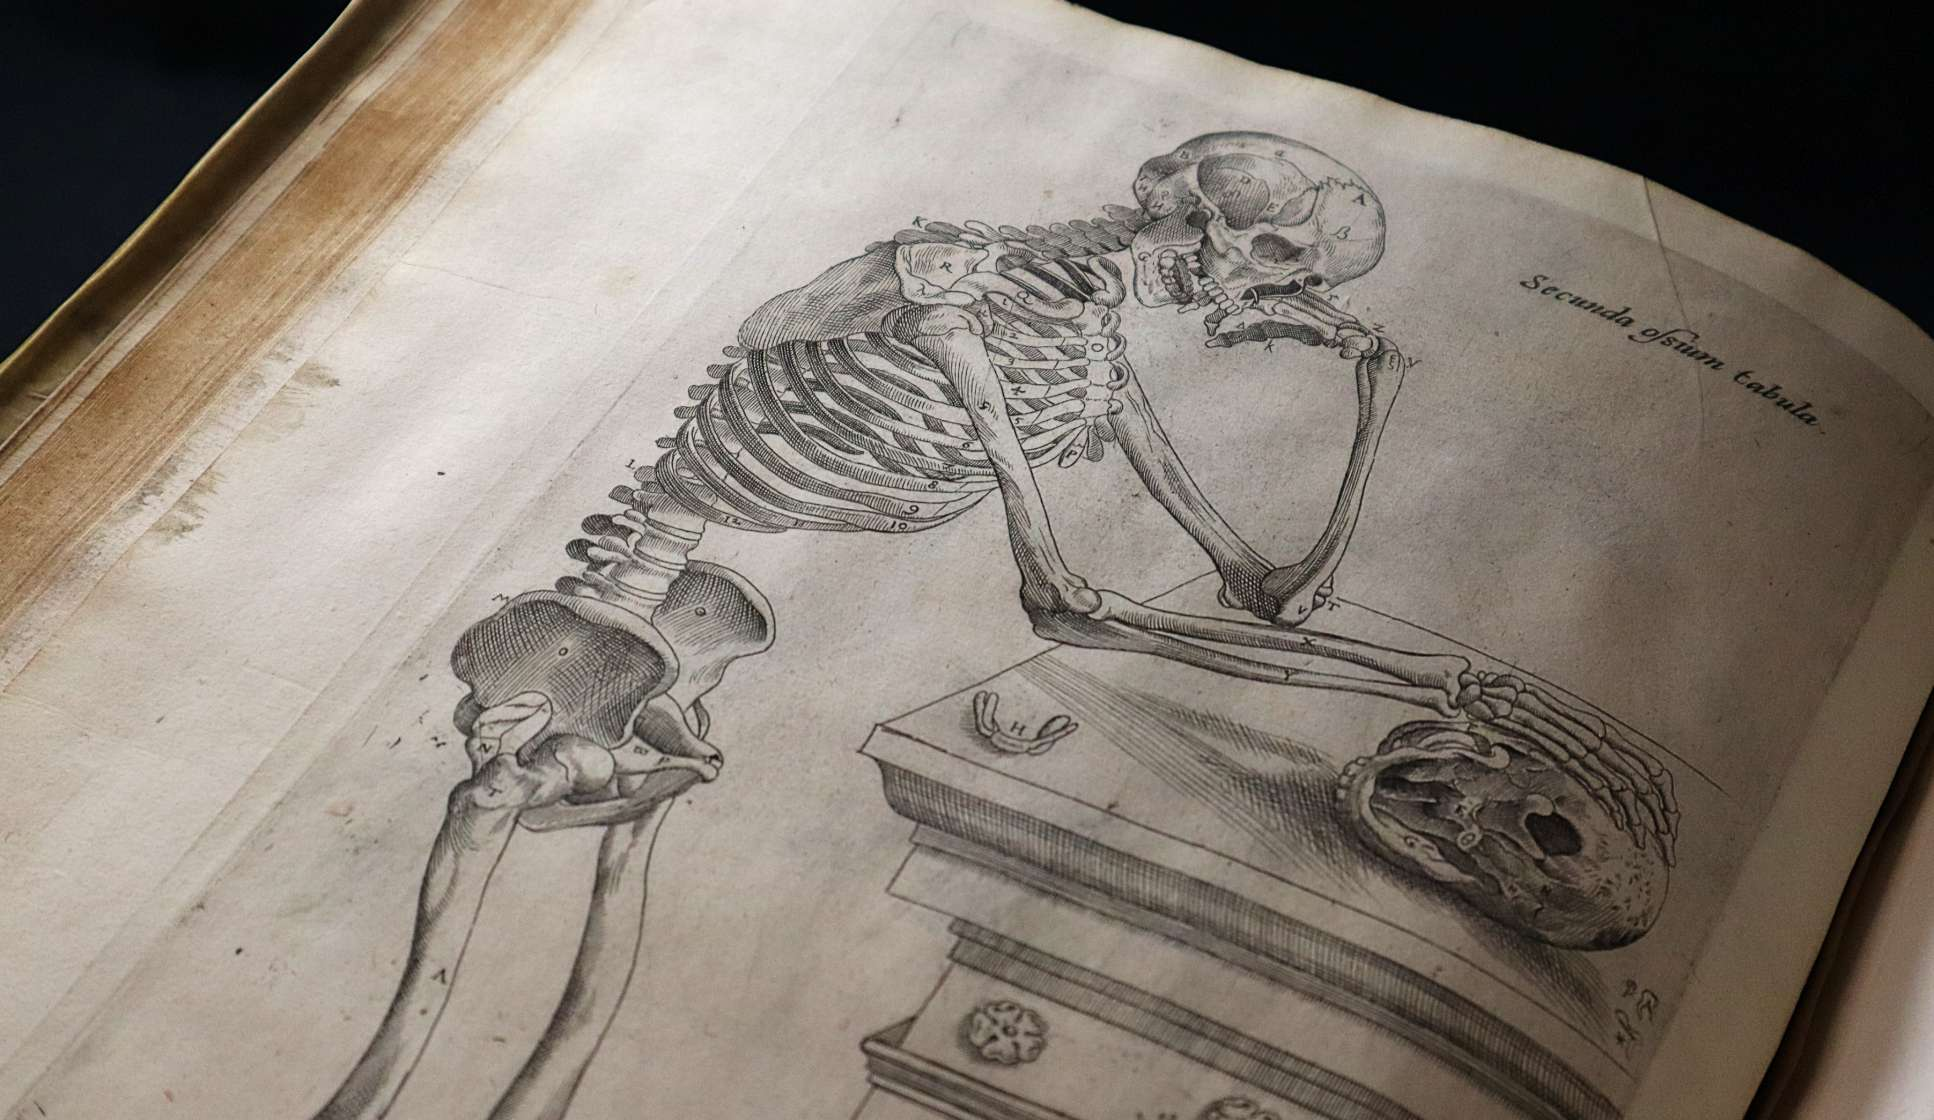 A diagram of a human skeleton, observing a skull on a podium